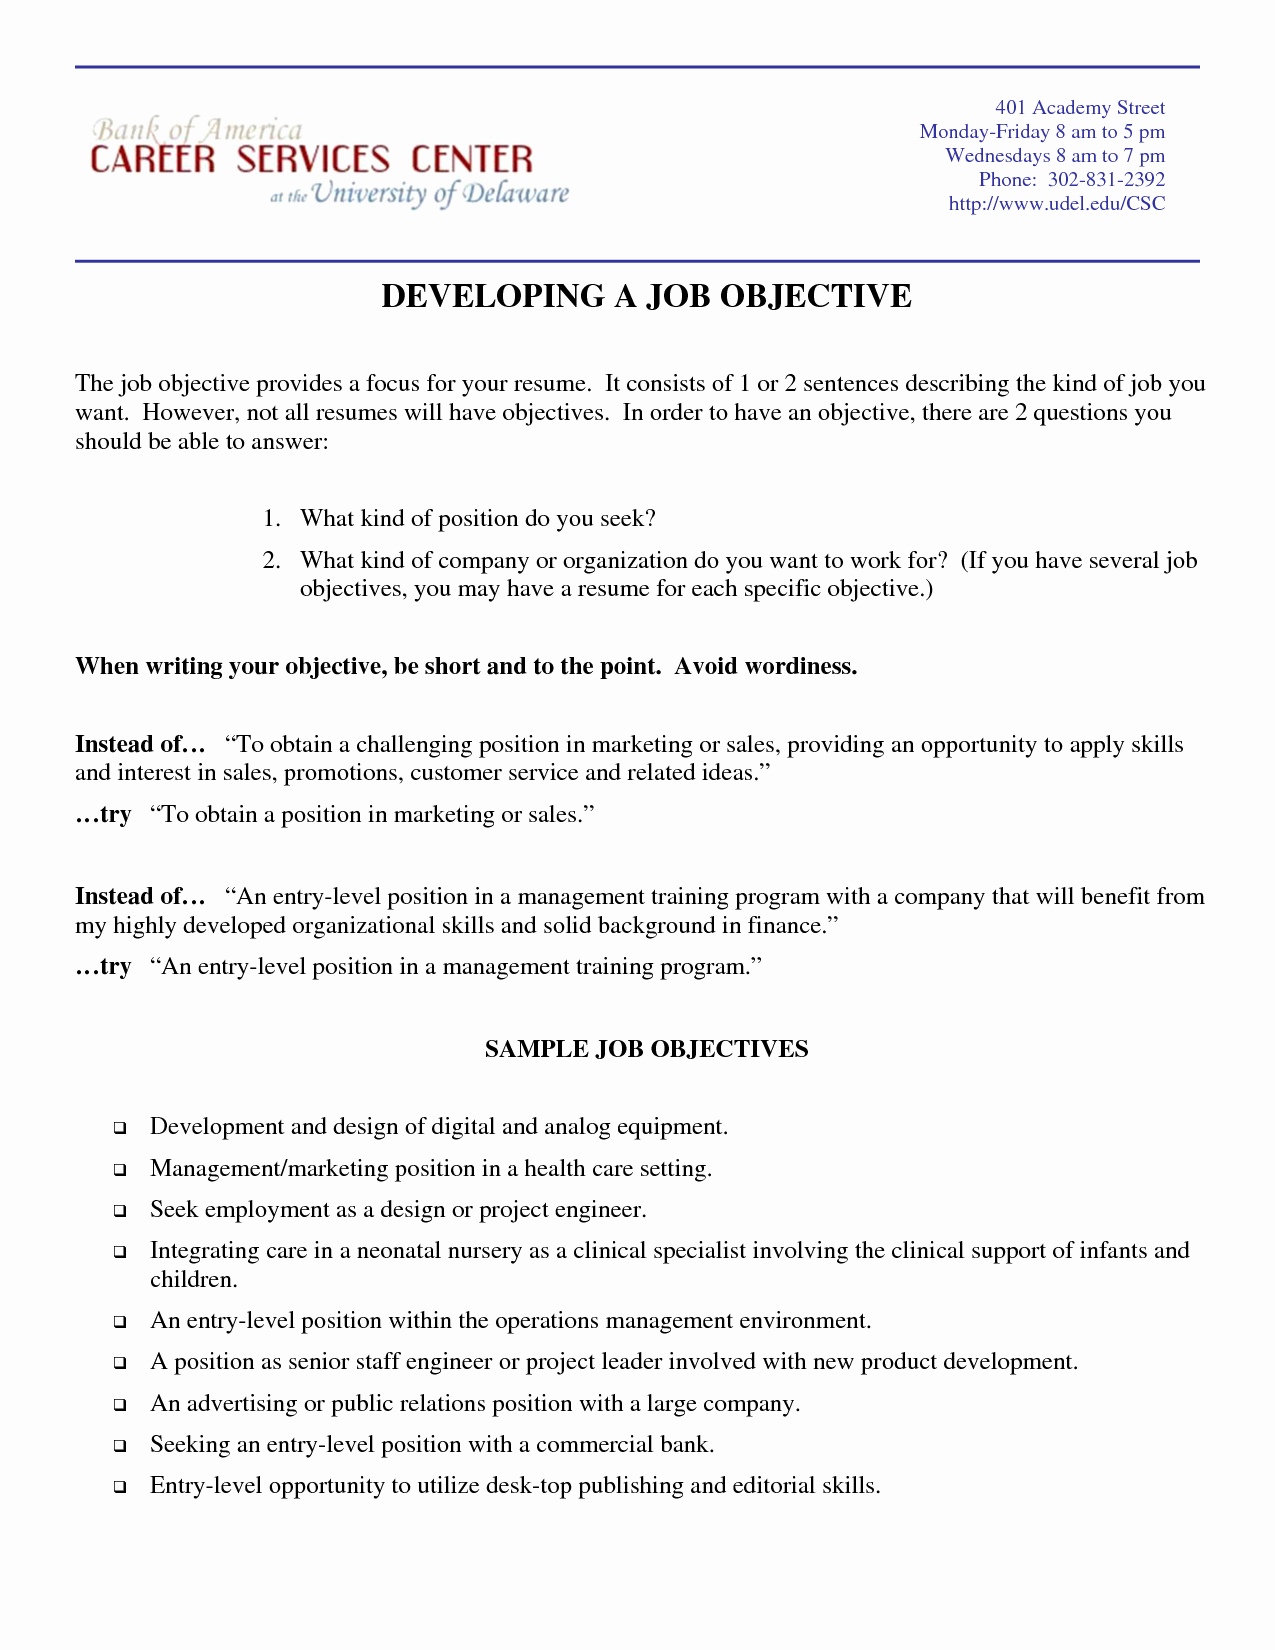 Marketing Resume Objective Samples